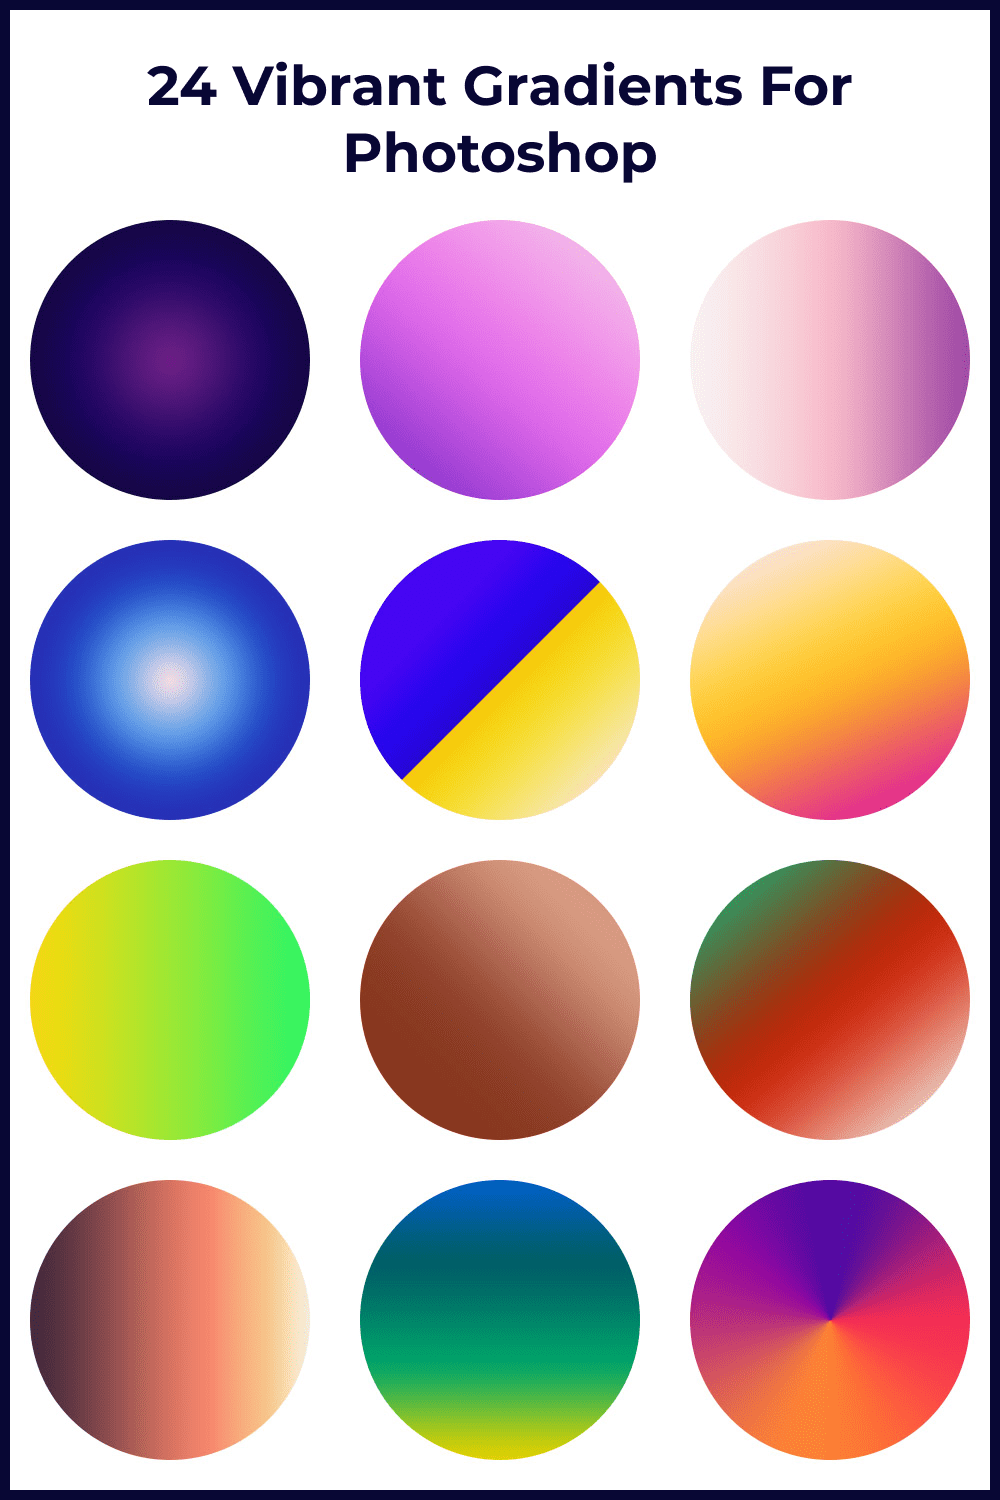 Create visually stunning and eye-popping designs using the gradients created with bright hues.